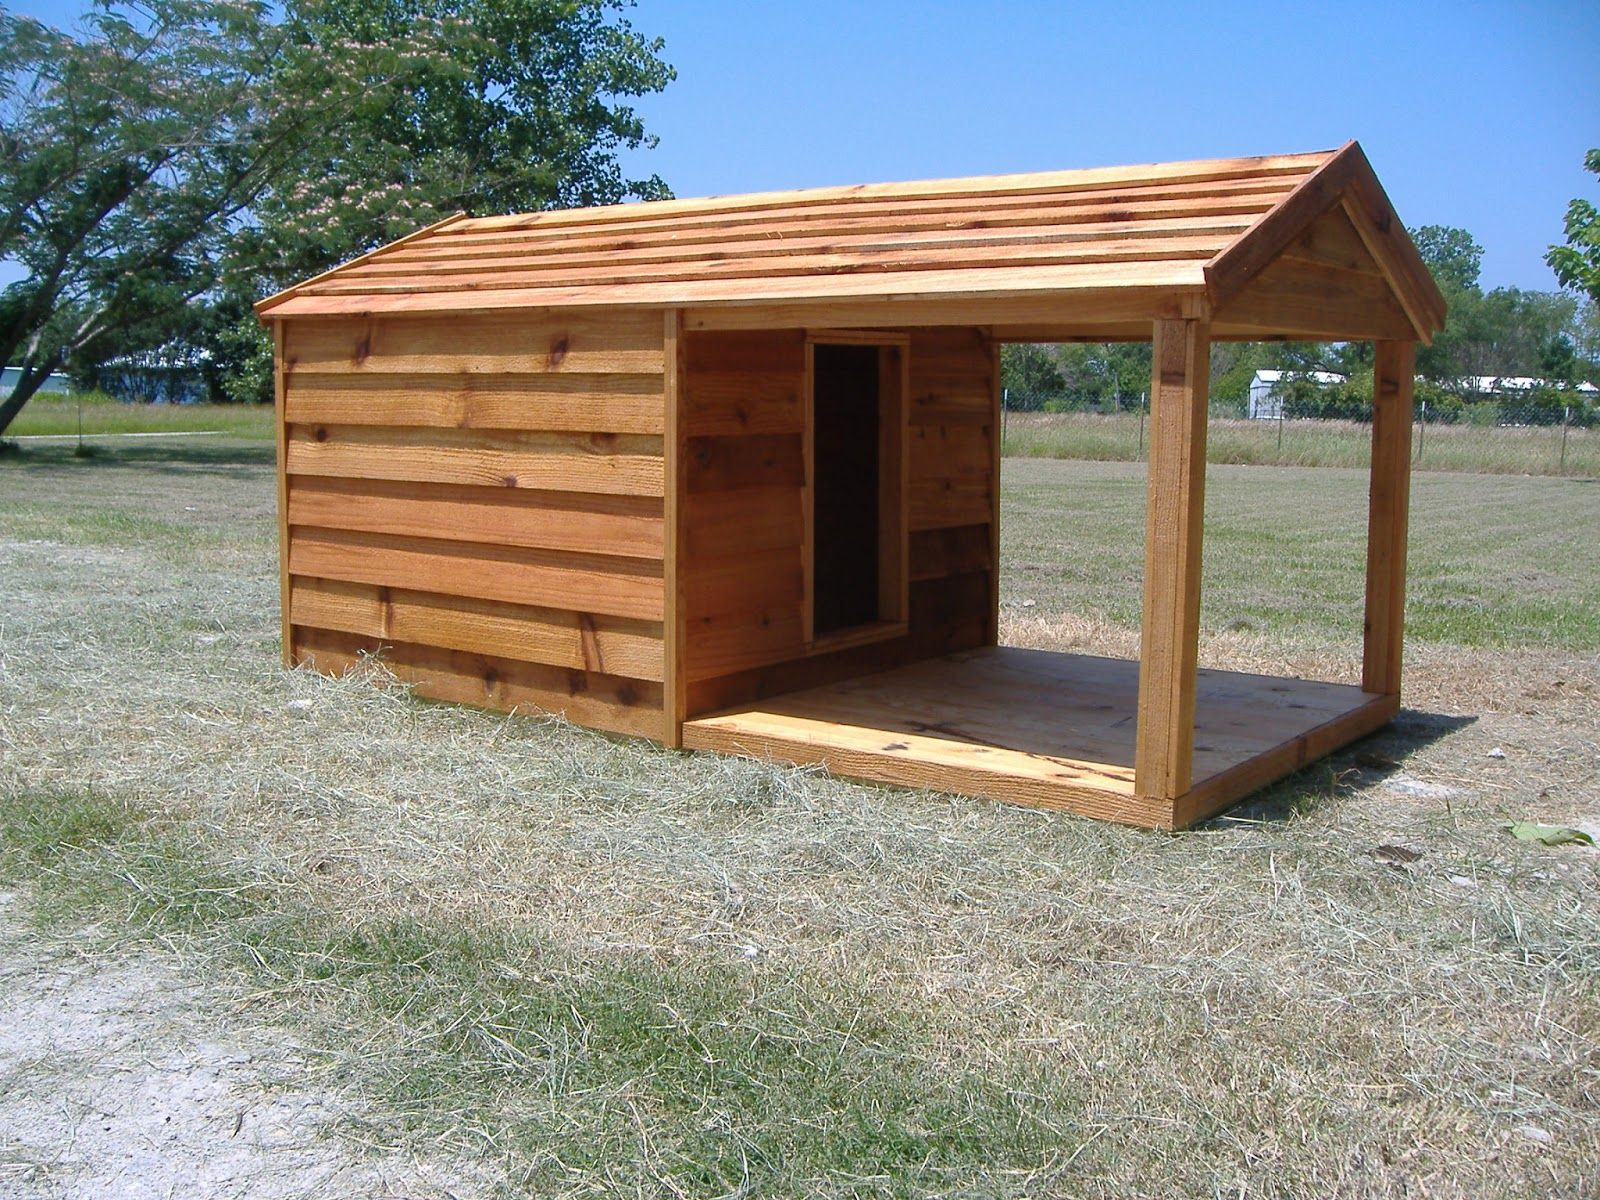 Insulated Dog House Keep Your Pet Friend Safe Stackedstonetile Dog House With Porch Dog House Plans Cool Dog Houses